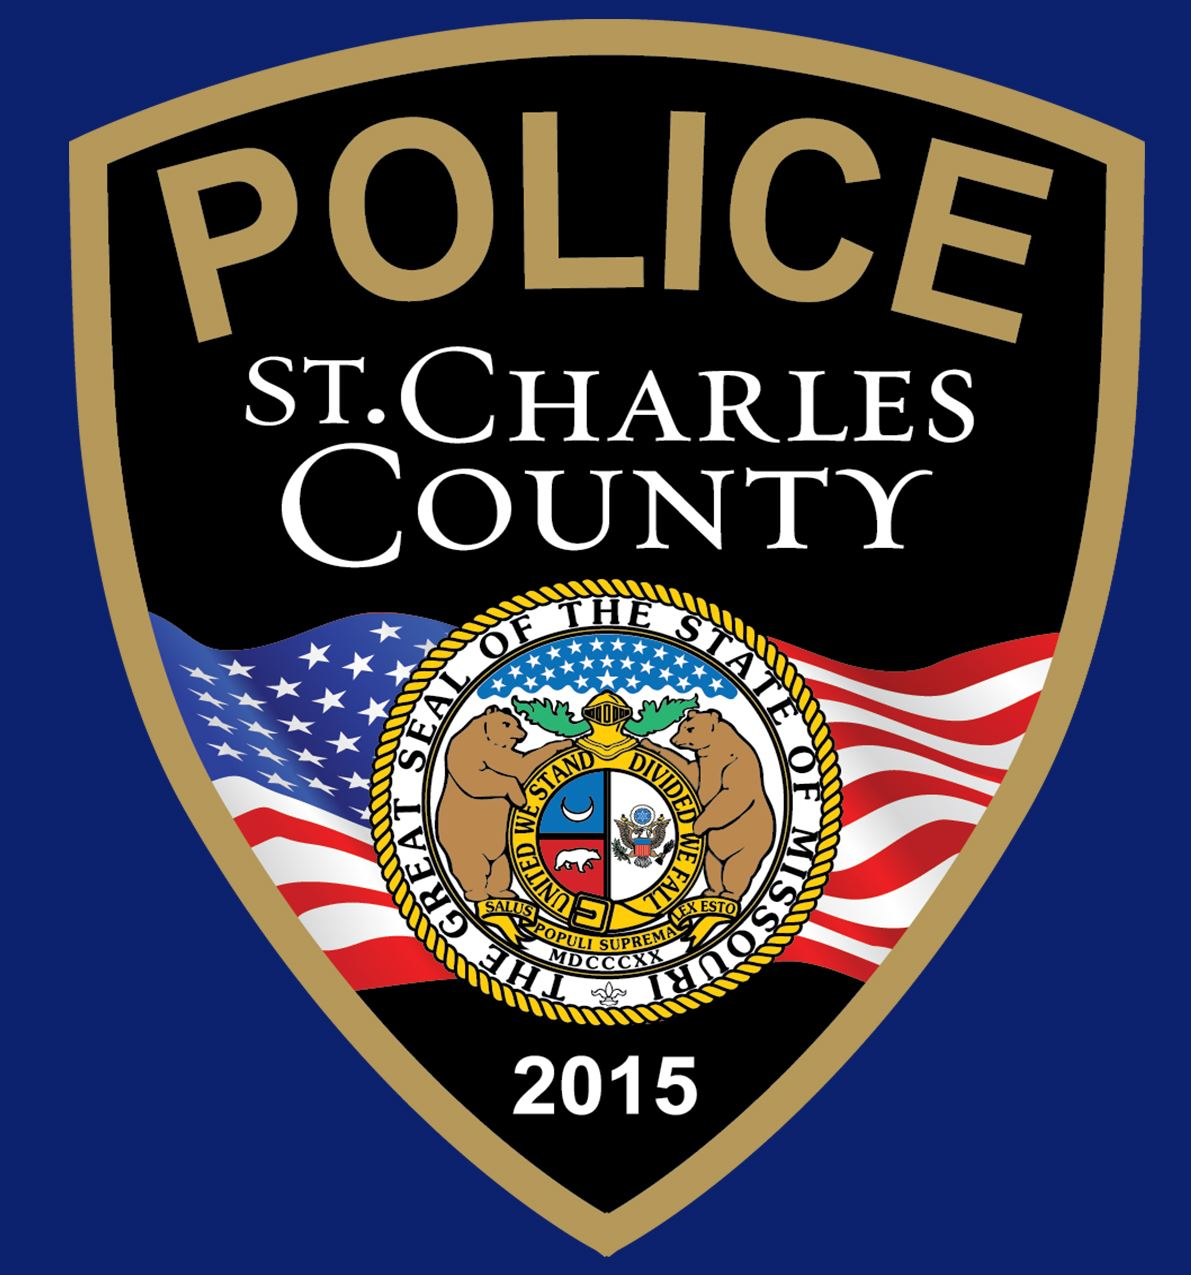 County Police Patch